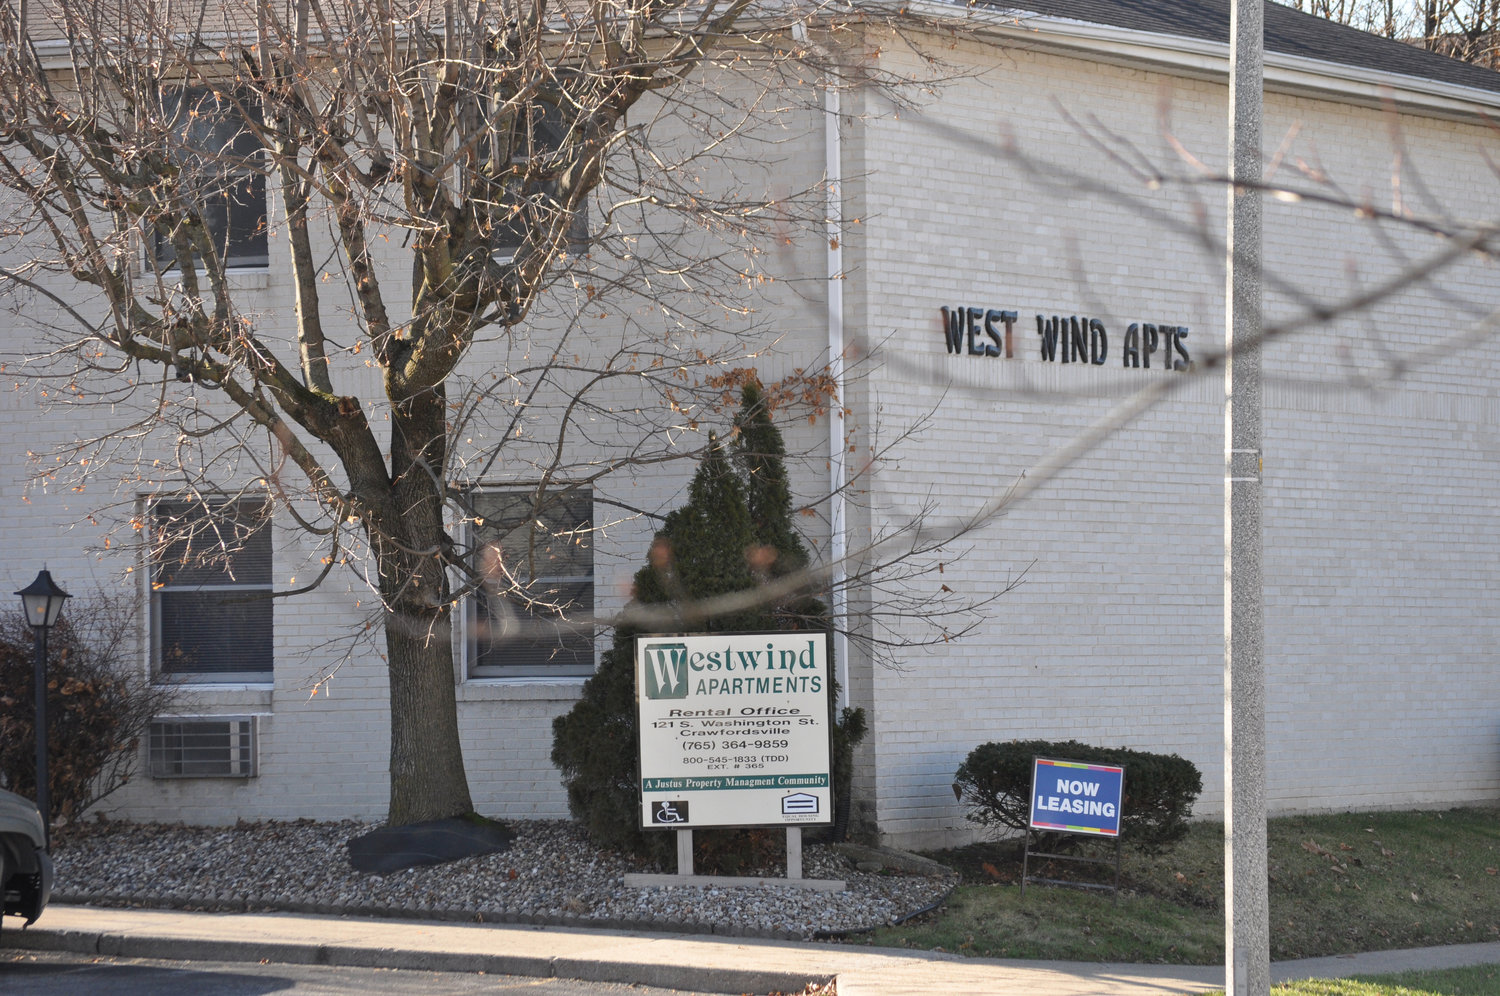 West Wind Apartments is one of four Montgomery County complexes to be rehabilitated as part of a state-led program to preserve housing for low and moderate-income residents.